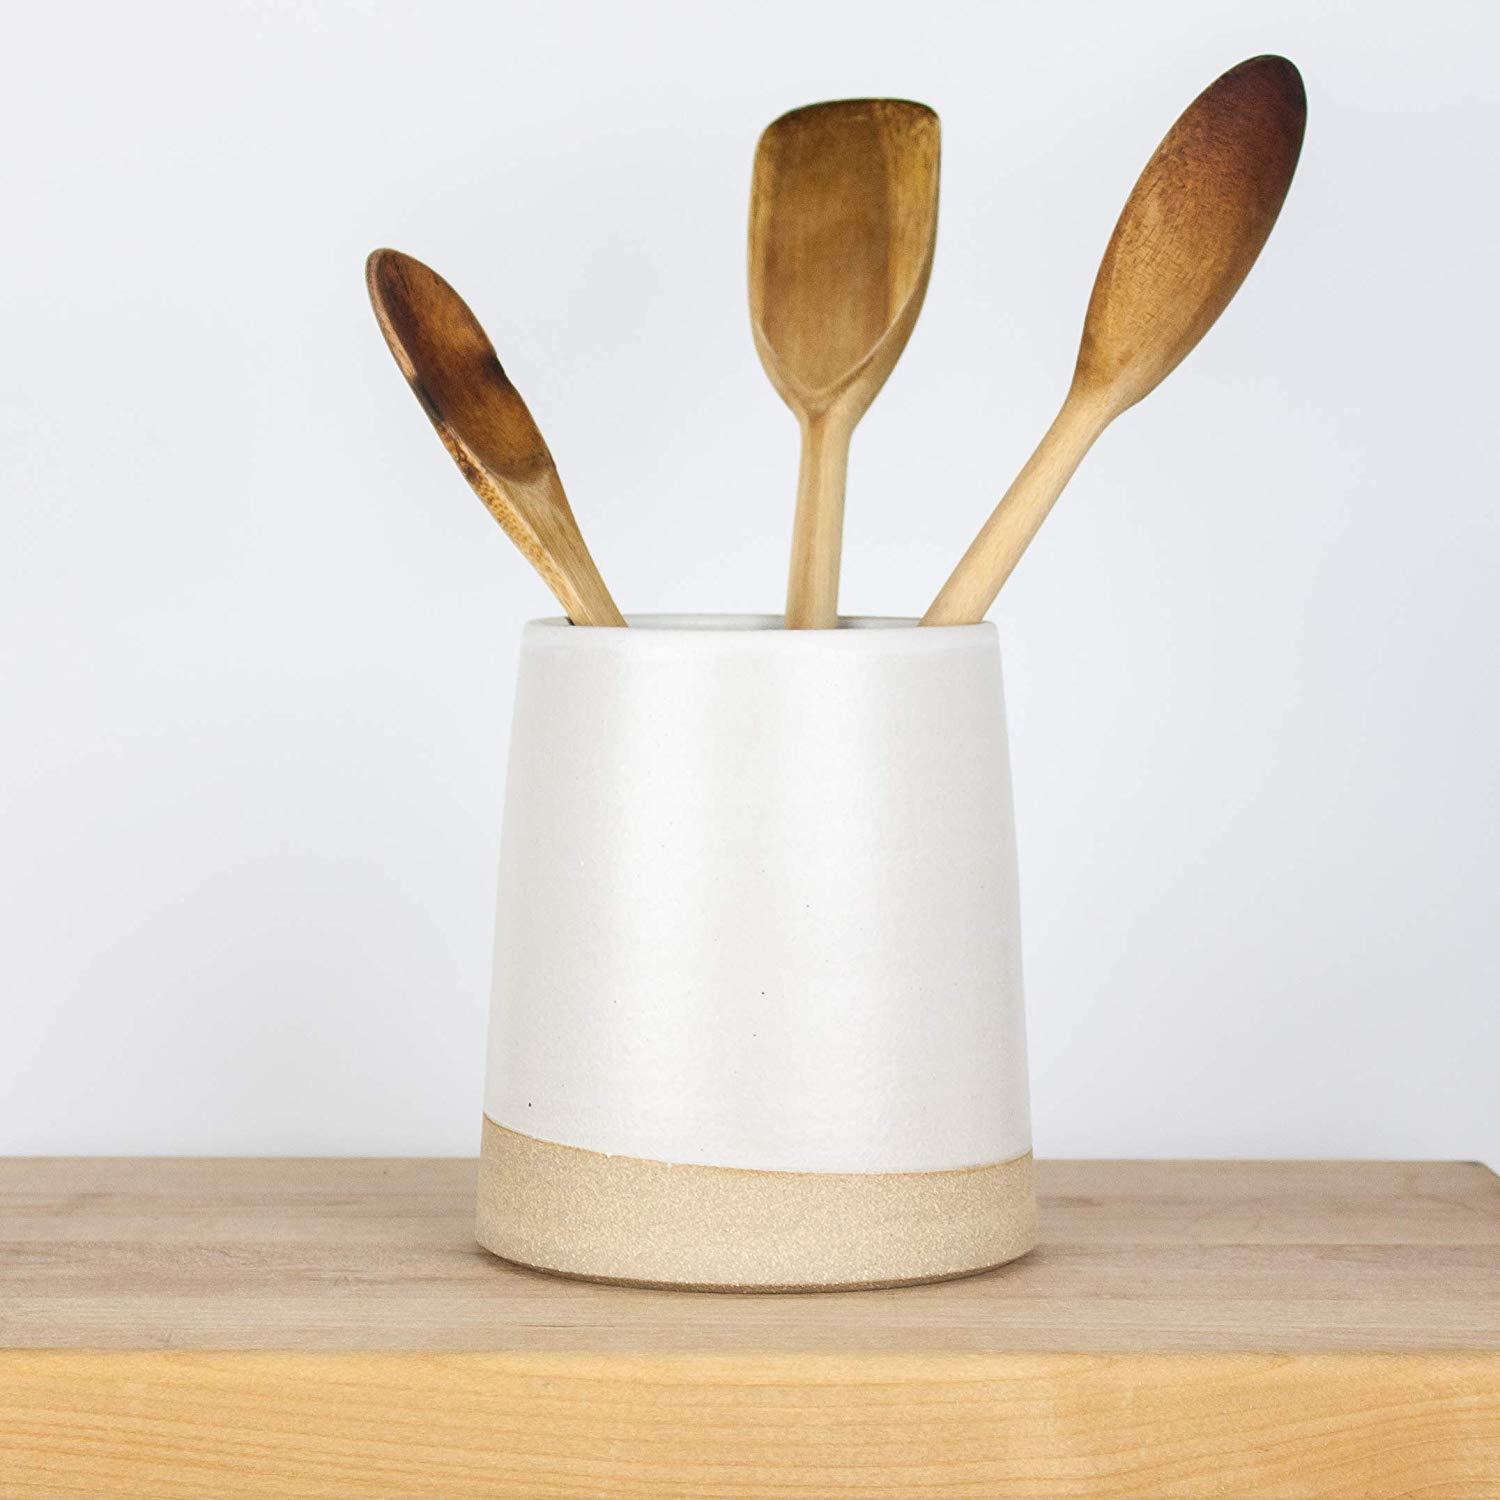 Minimal Modern White Ceramic Utensil Holder By Barombi Studios Crock Caddy